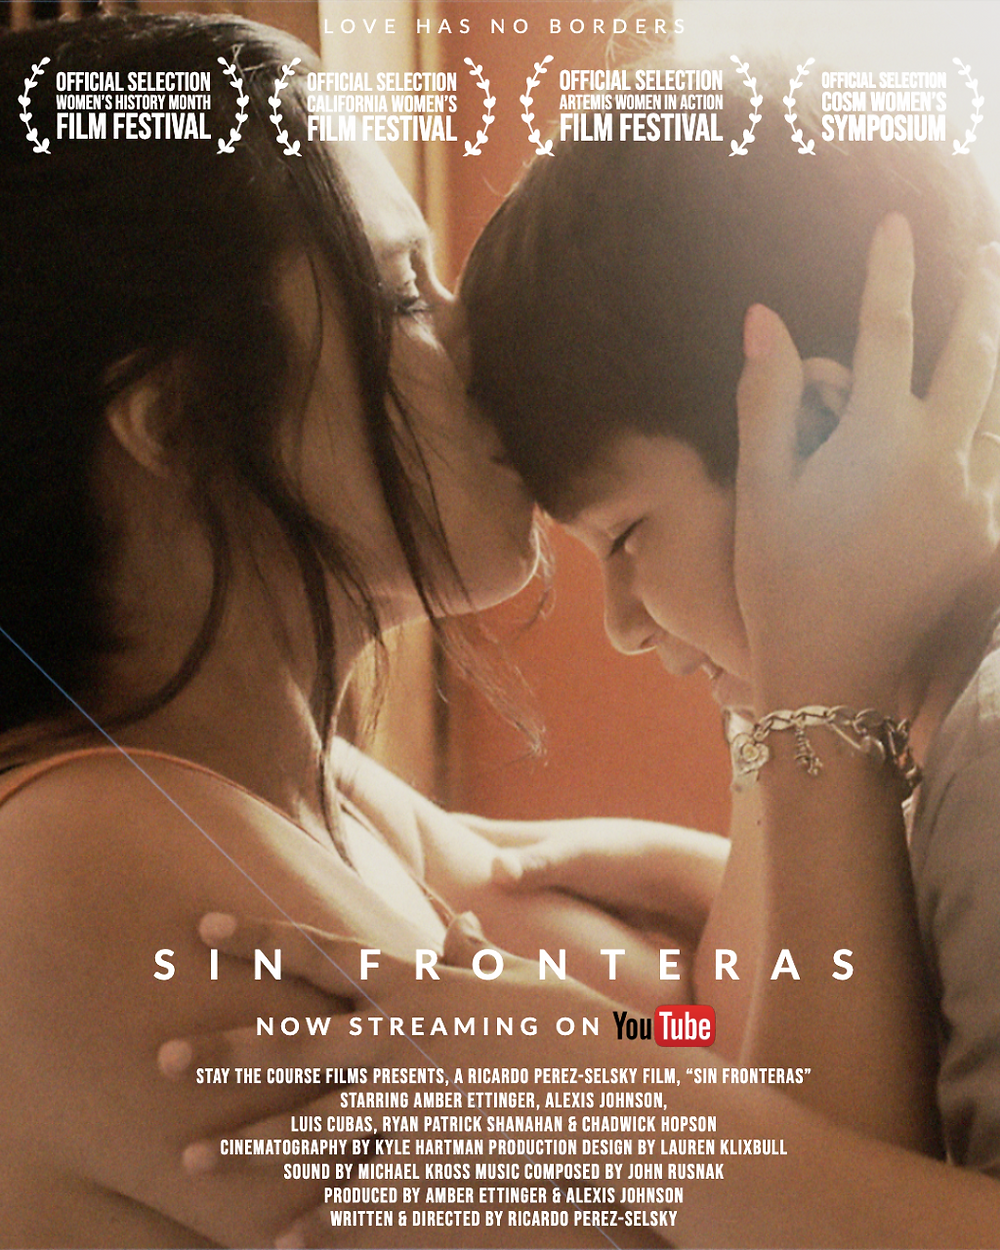 Poster for Sin Fronteras showing protagonists.